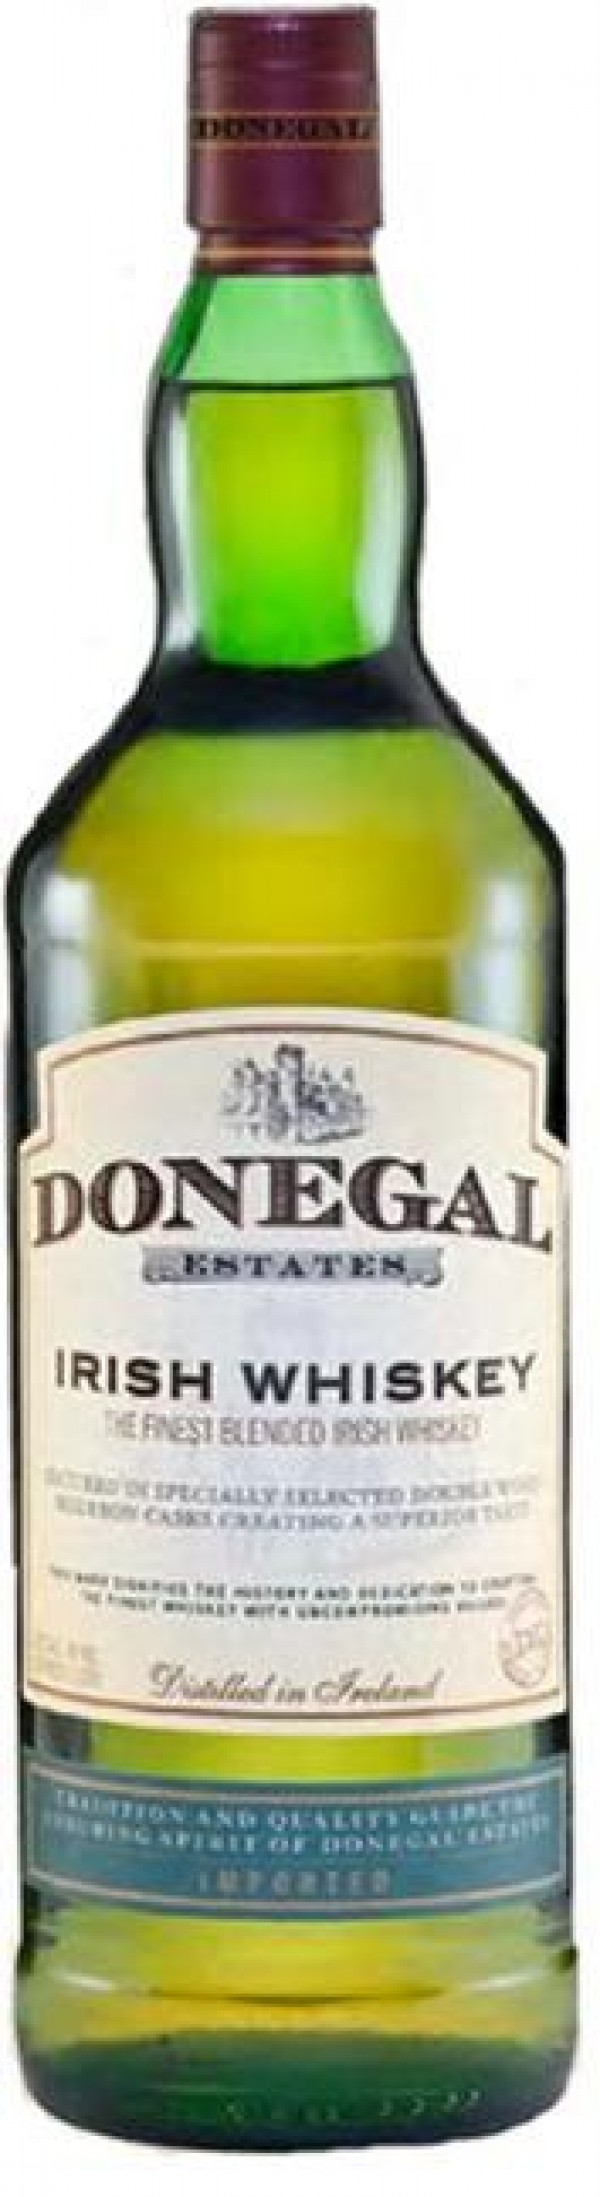 Donegal Estates Irish Whiskey